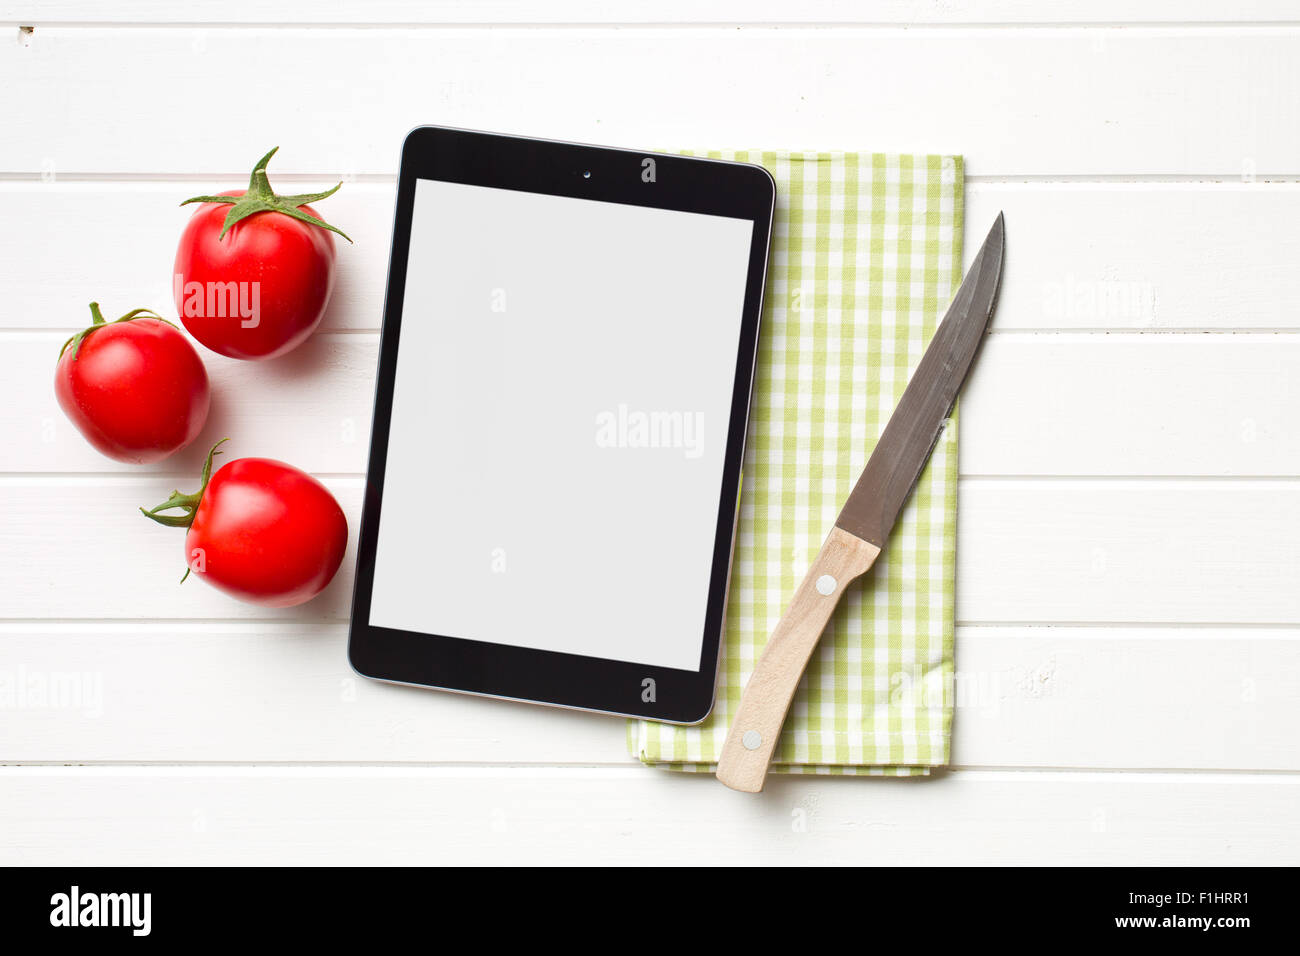 computer tablet and tomatoes on kitchen table - Stock Image